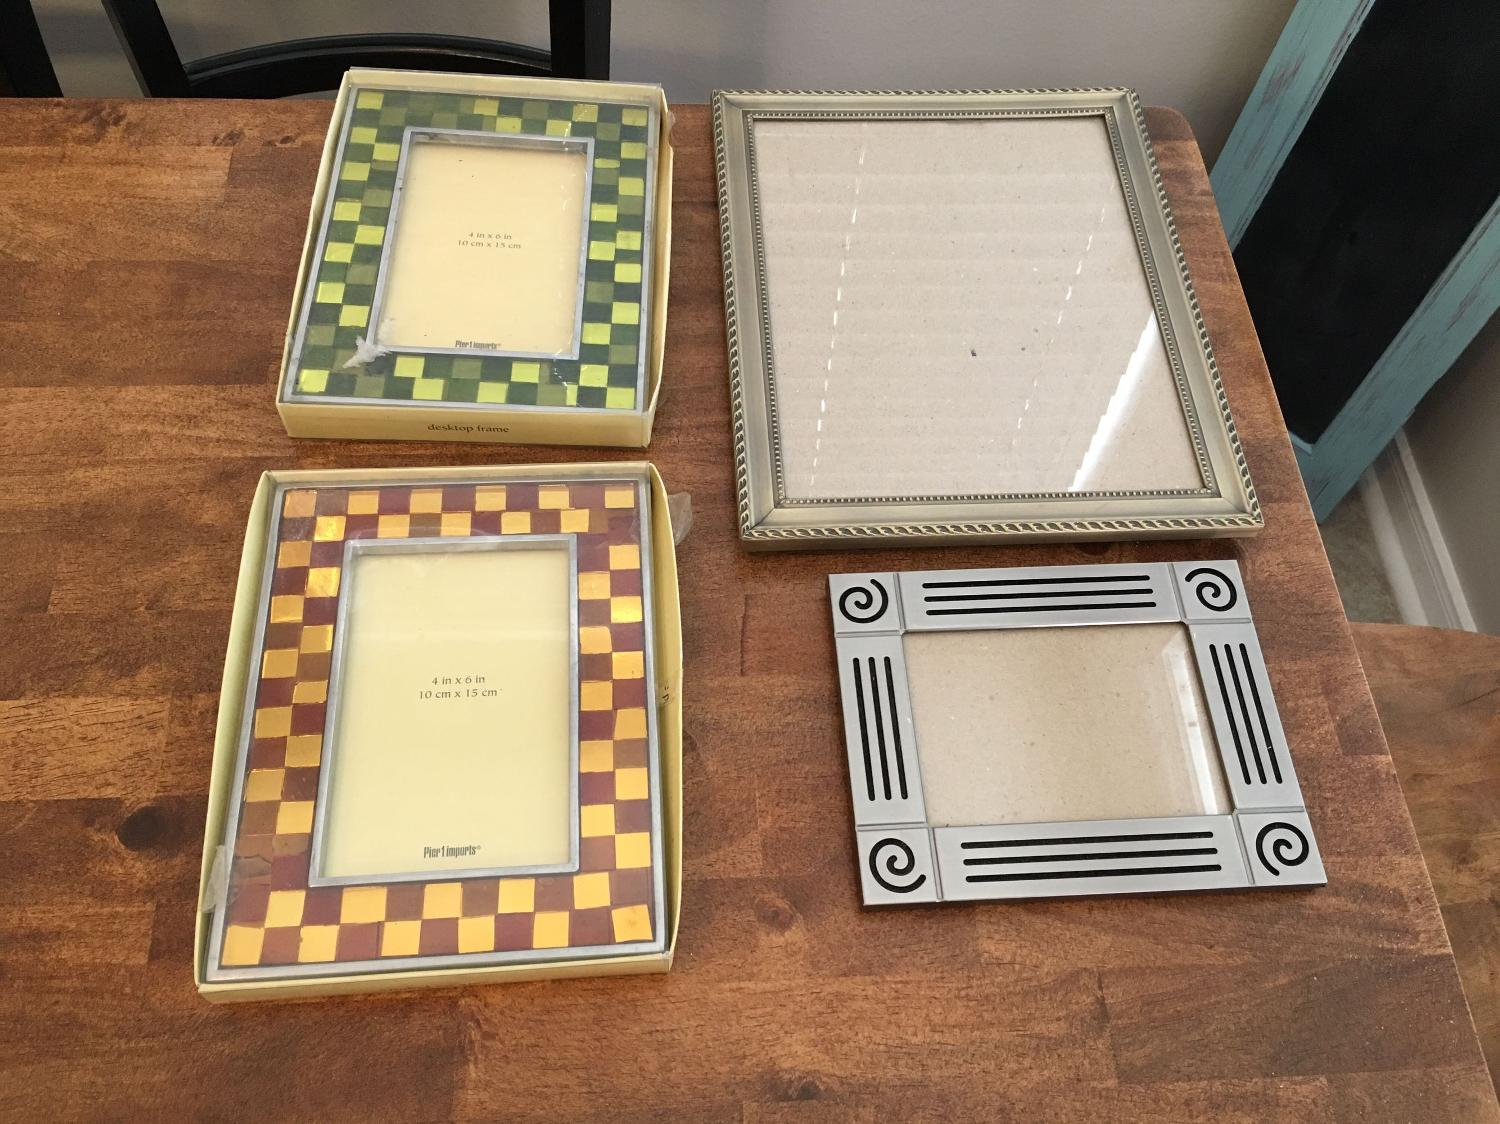 Best assorted picture frames for sale in cypress texas for Home decor 77429